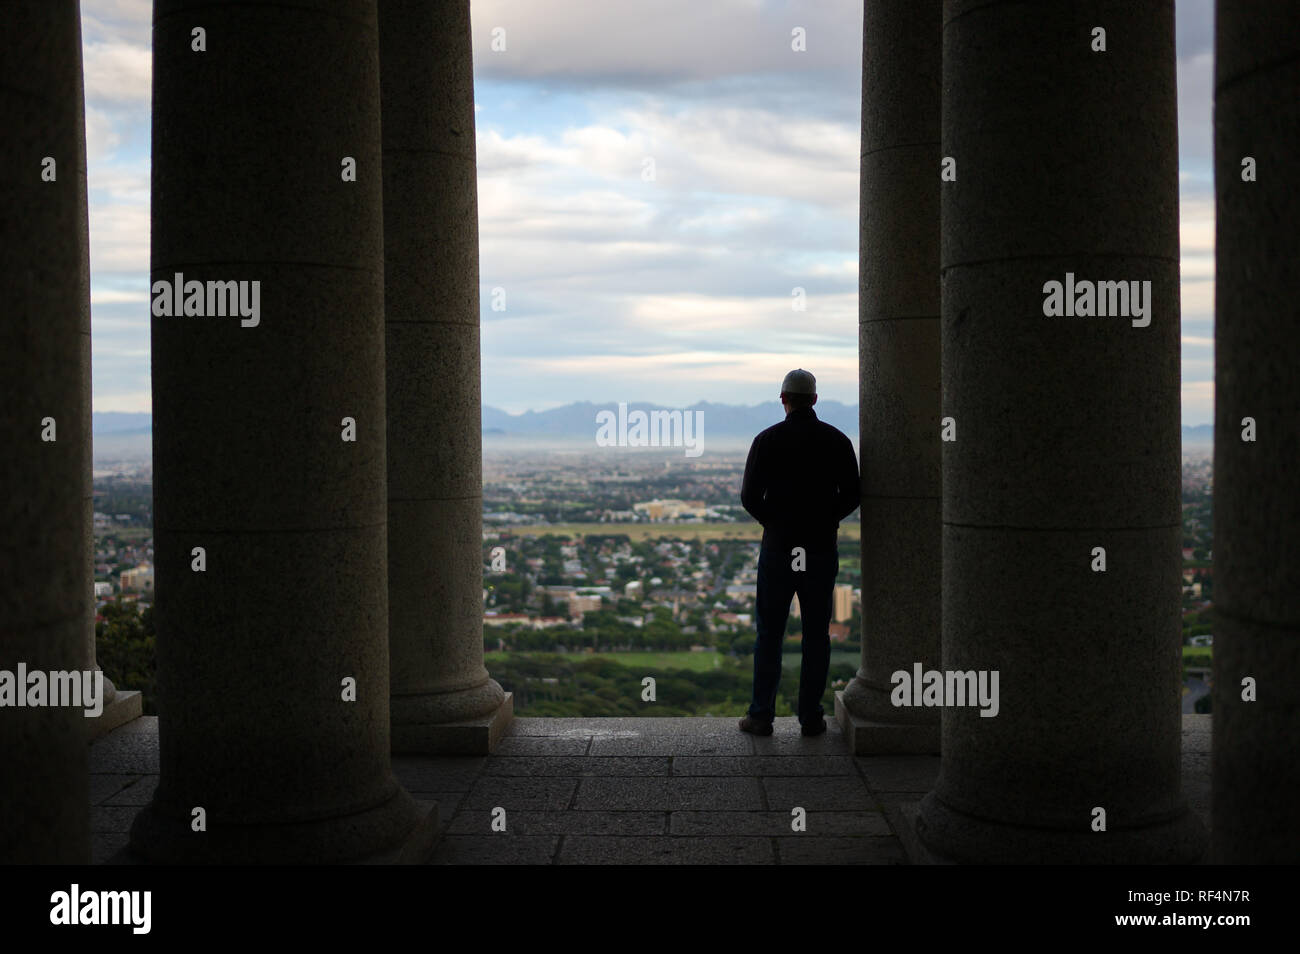 Rhodes Memorial is a popular attraction on the slopes of Devil's Peak in Cape Town, Western Cape, South Africa affording sweeping views of the city - Stock Image